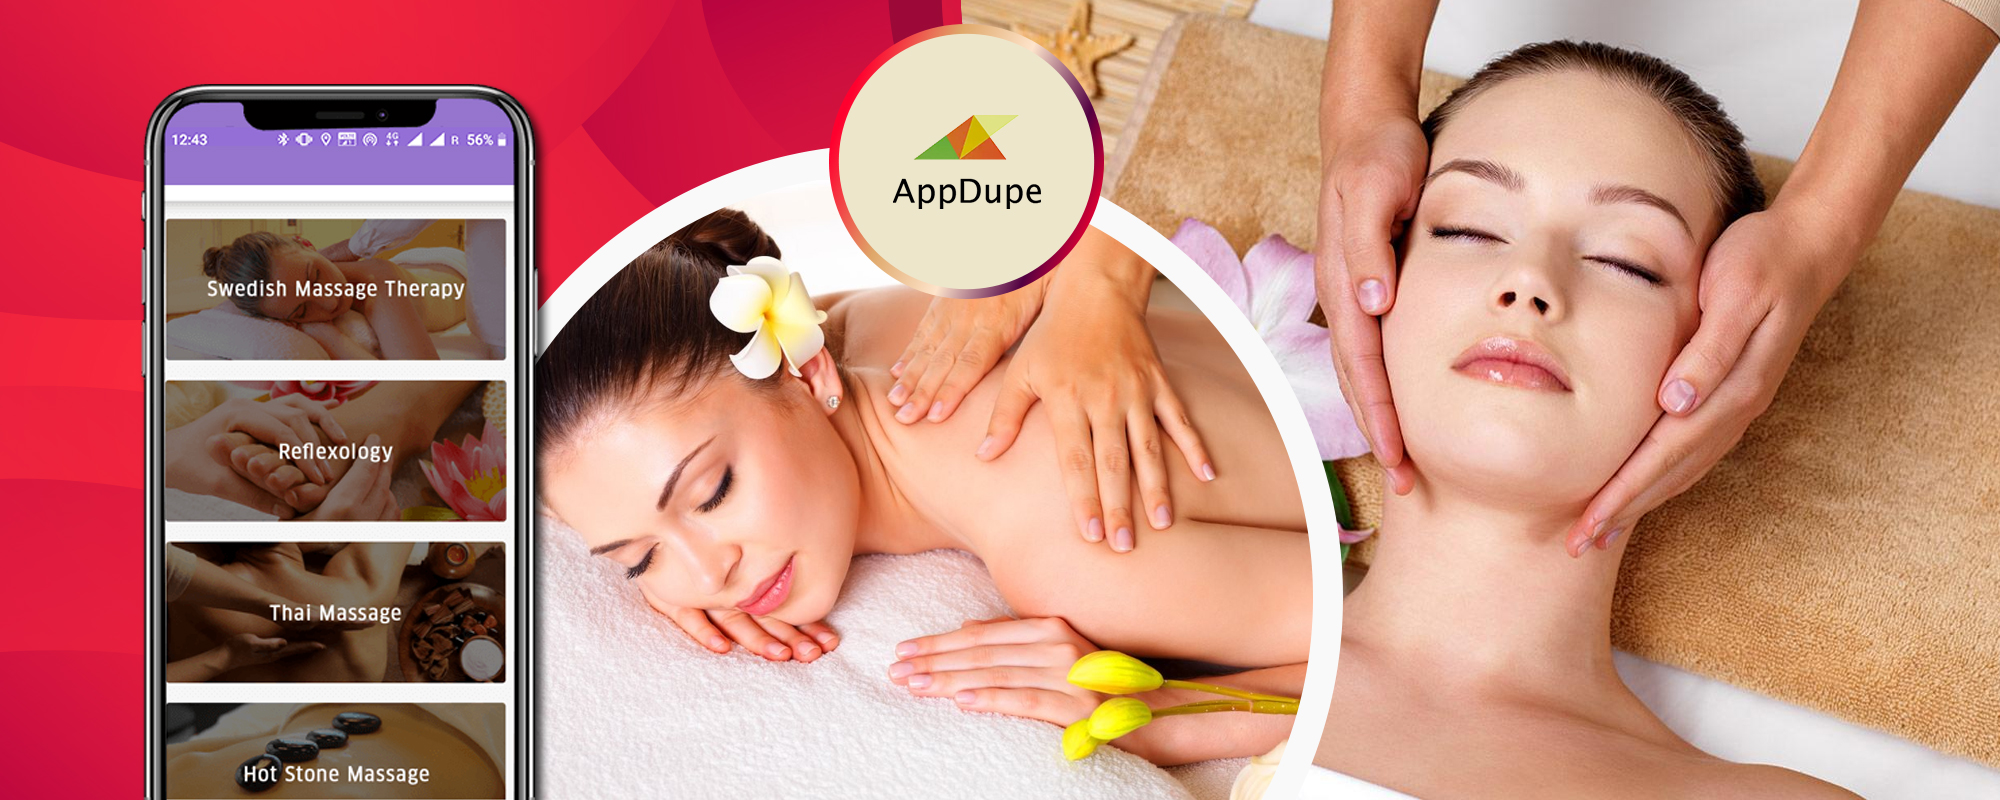 Massage apps are gradually occupying a firm place in the on-demand service market ; Scope and development - Blog   Appdupe